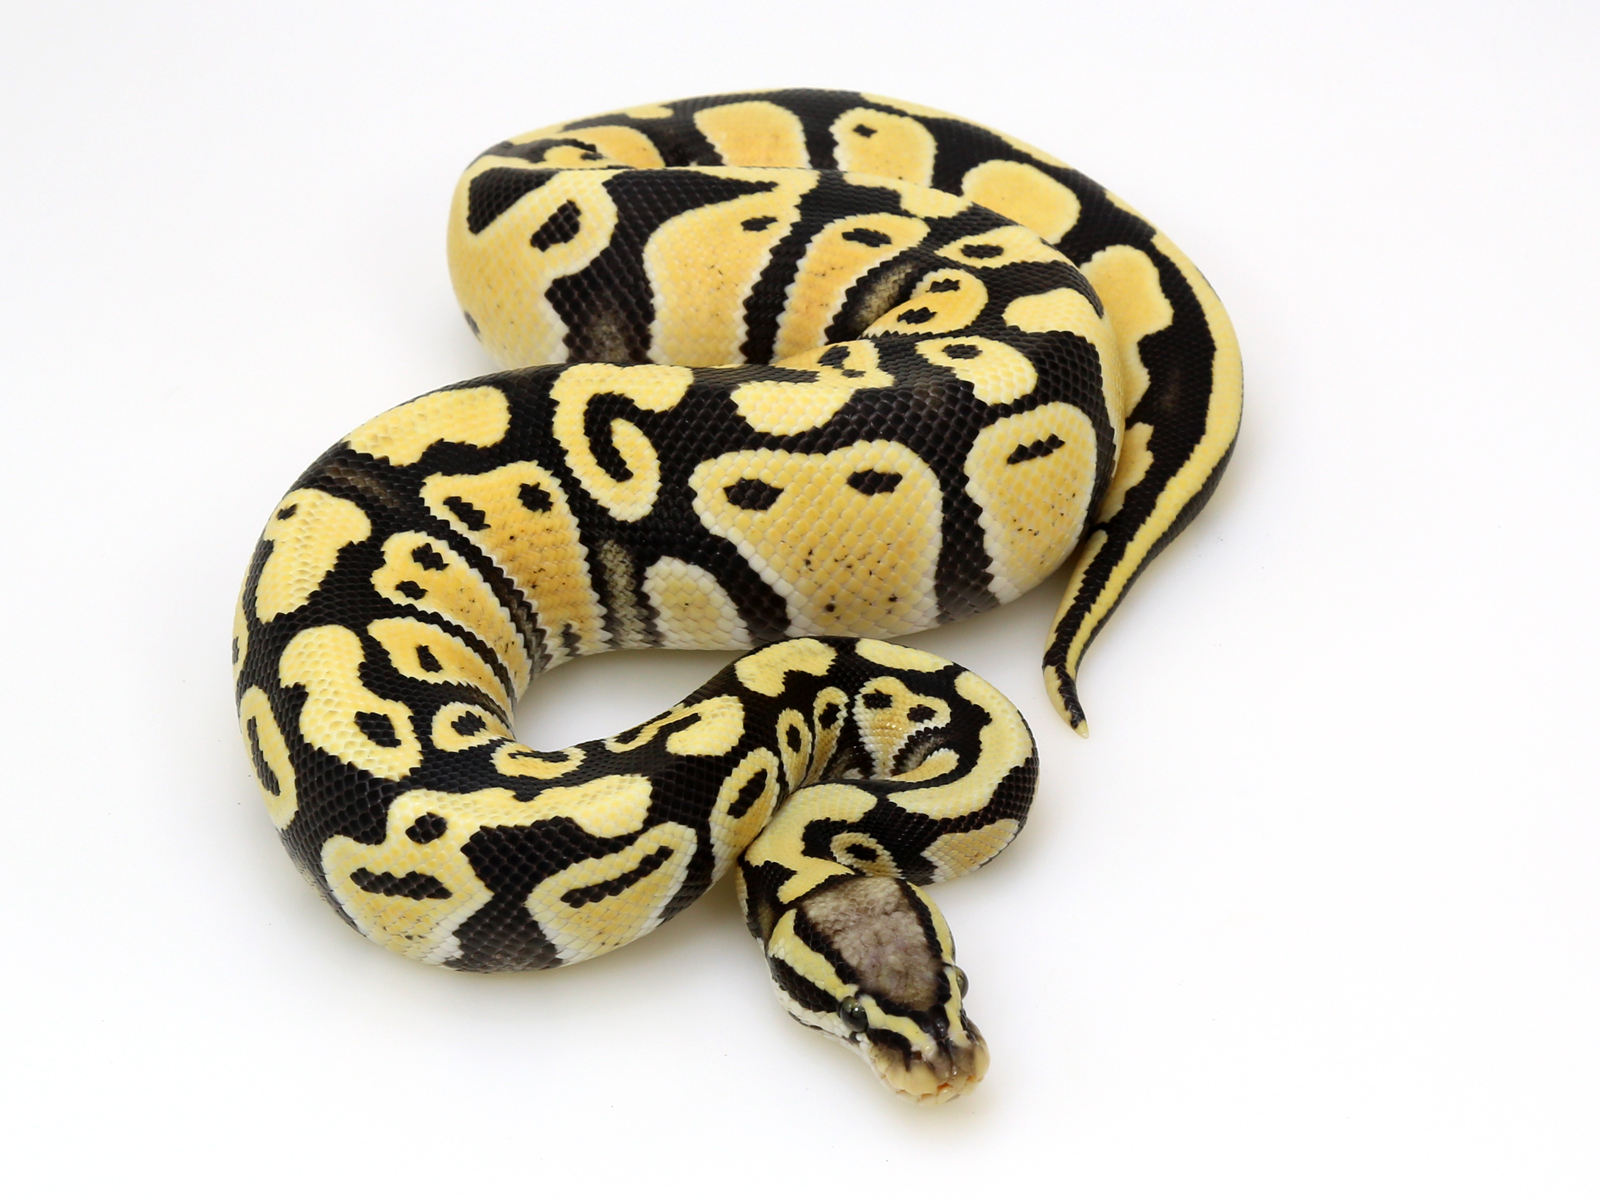 Pastel Desert Ghost – 2016 Male